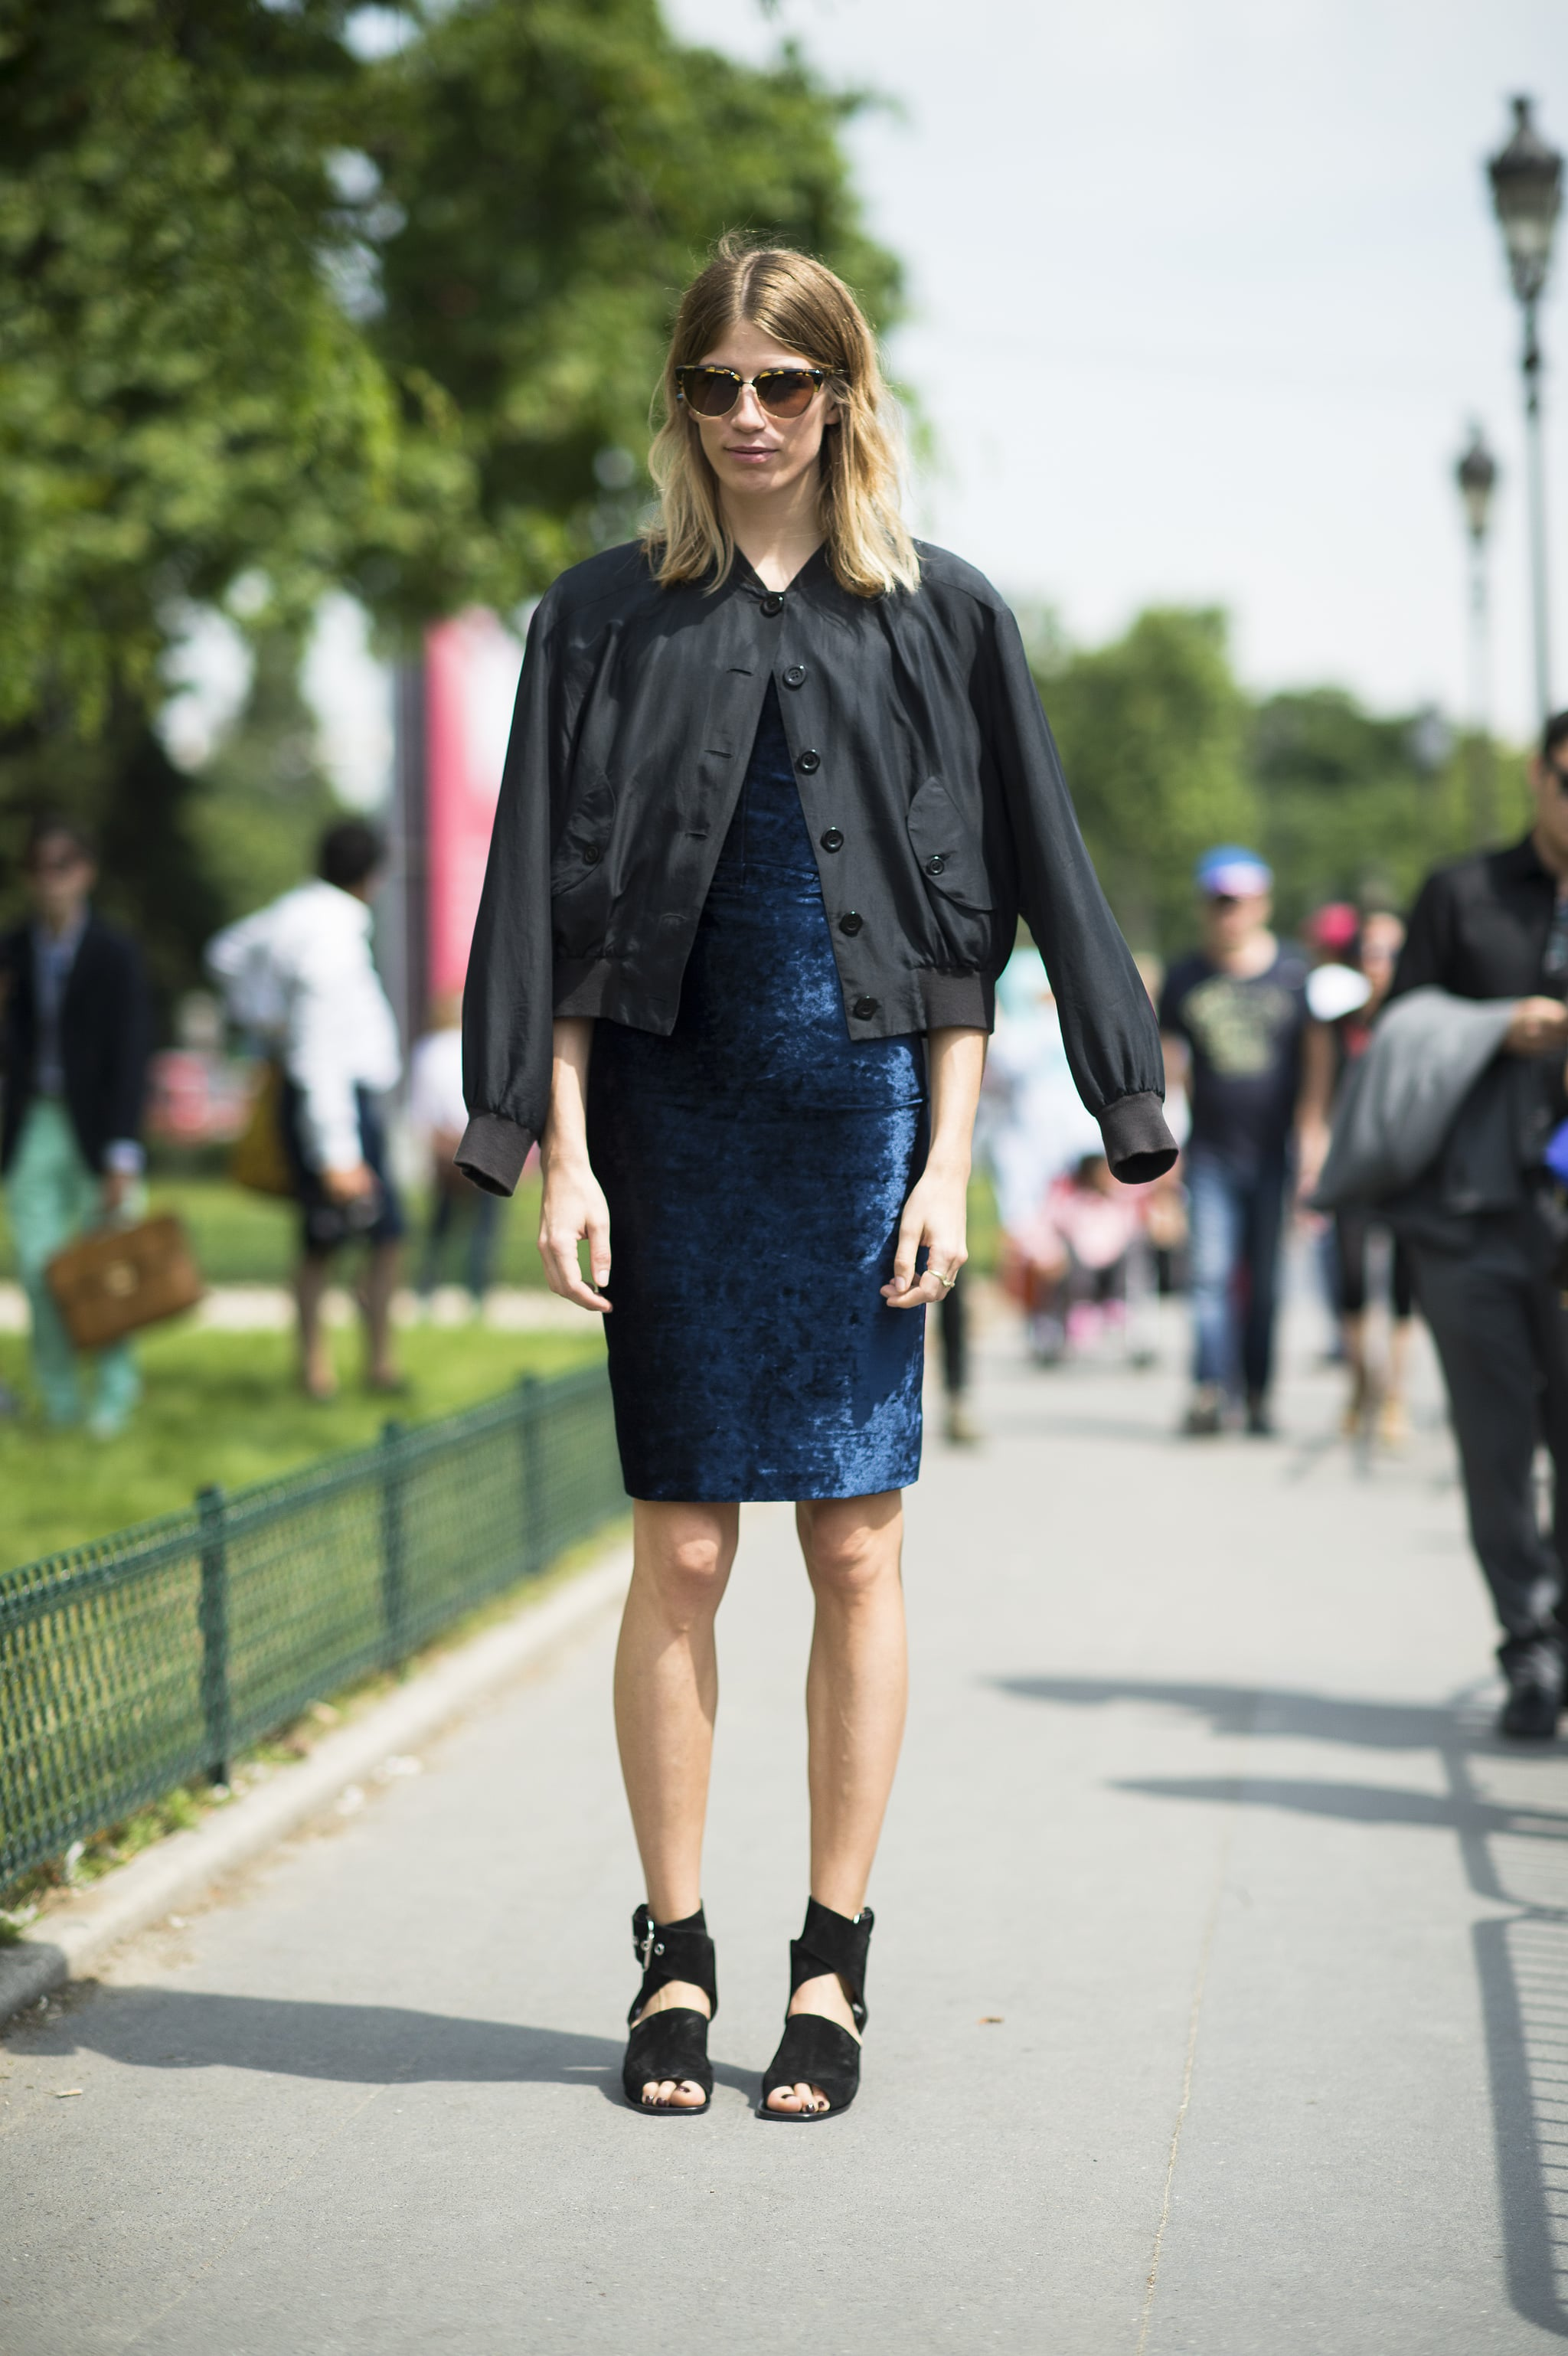 Rather than reaching for another black dress, this showgoer broke things up with a midnight blue option. Source: Le 21ème | Adam Katz Sinding